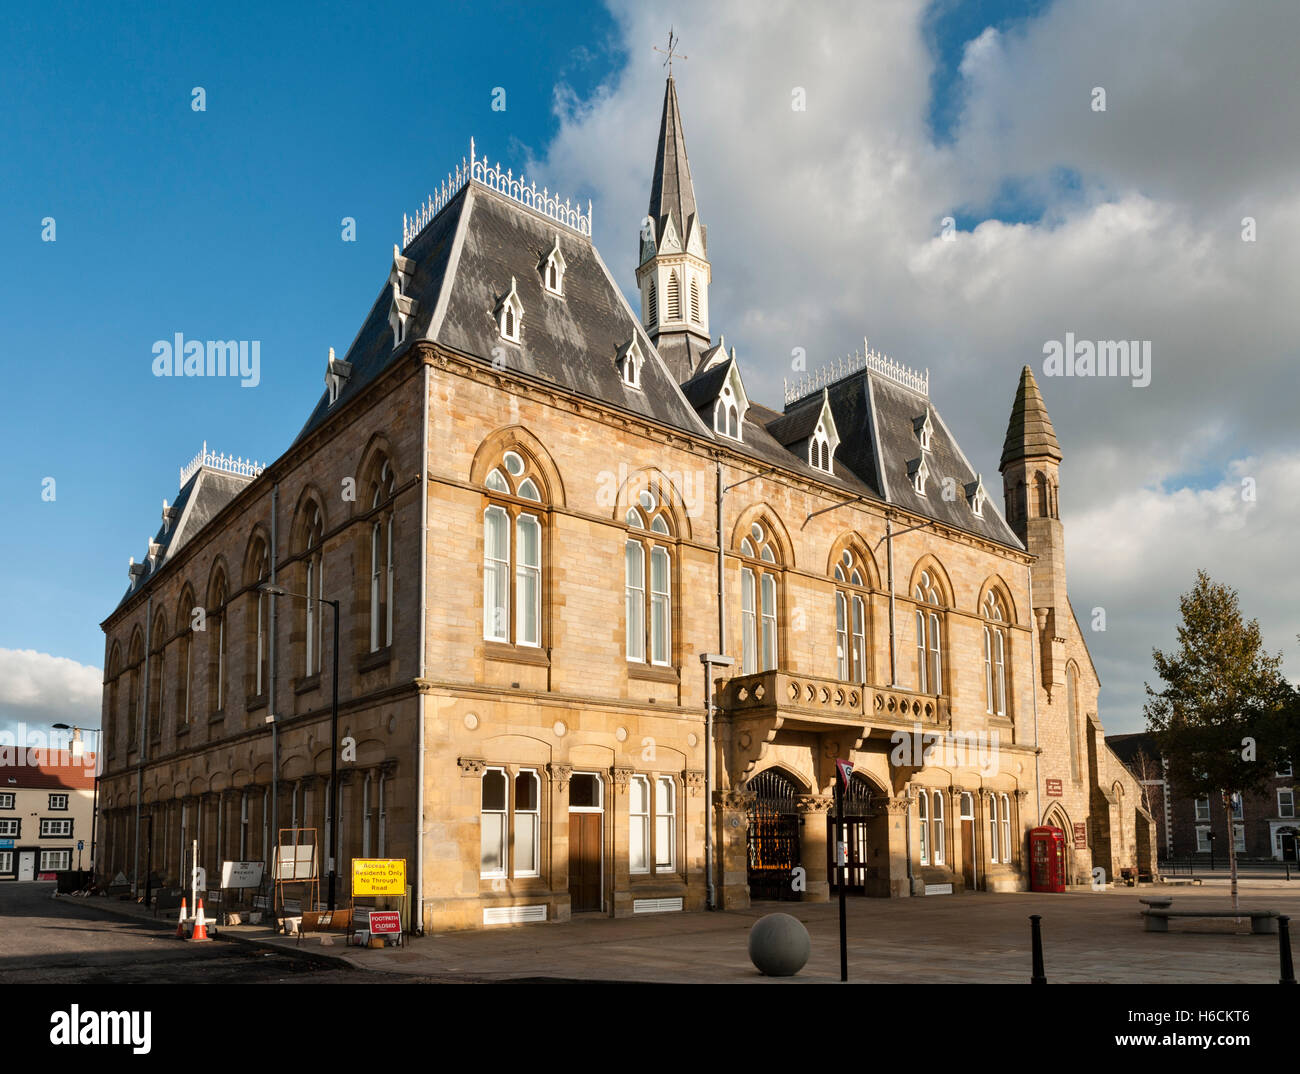 Bishop Auckland, County Durham, UK. The Victorian Gothic town hall in the market place, containing the library and Stock Photo